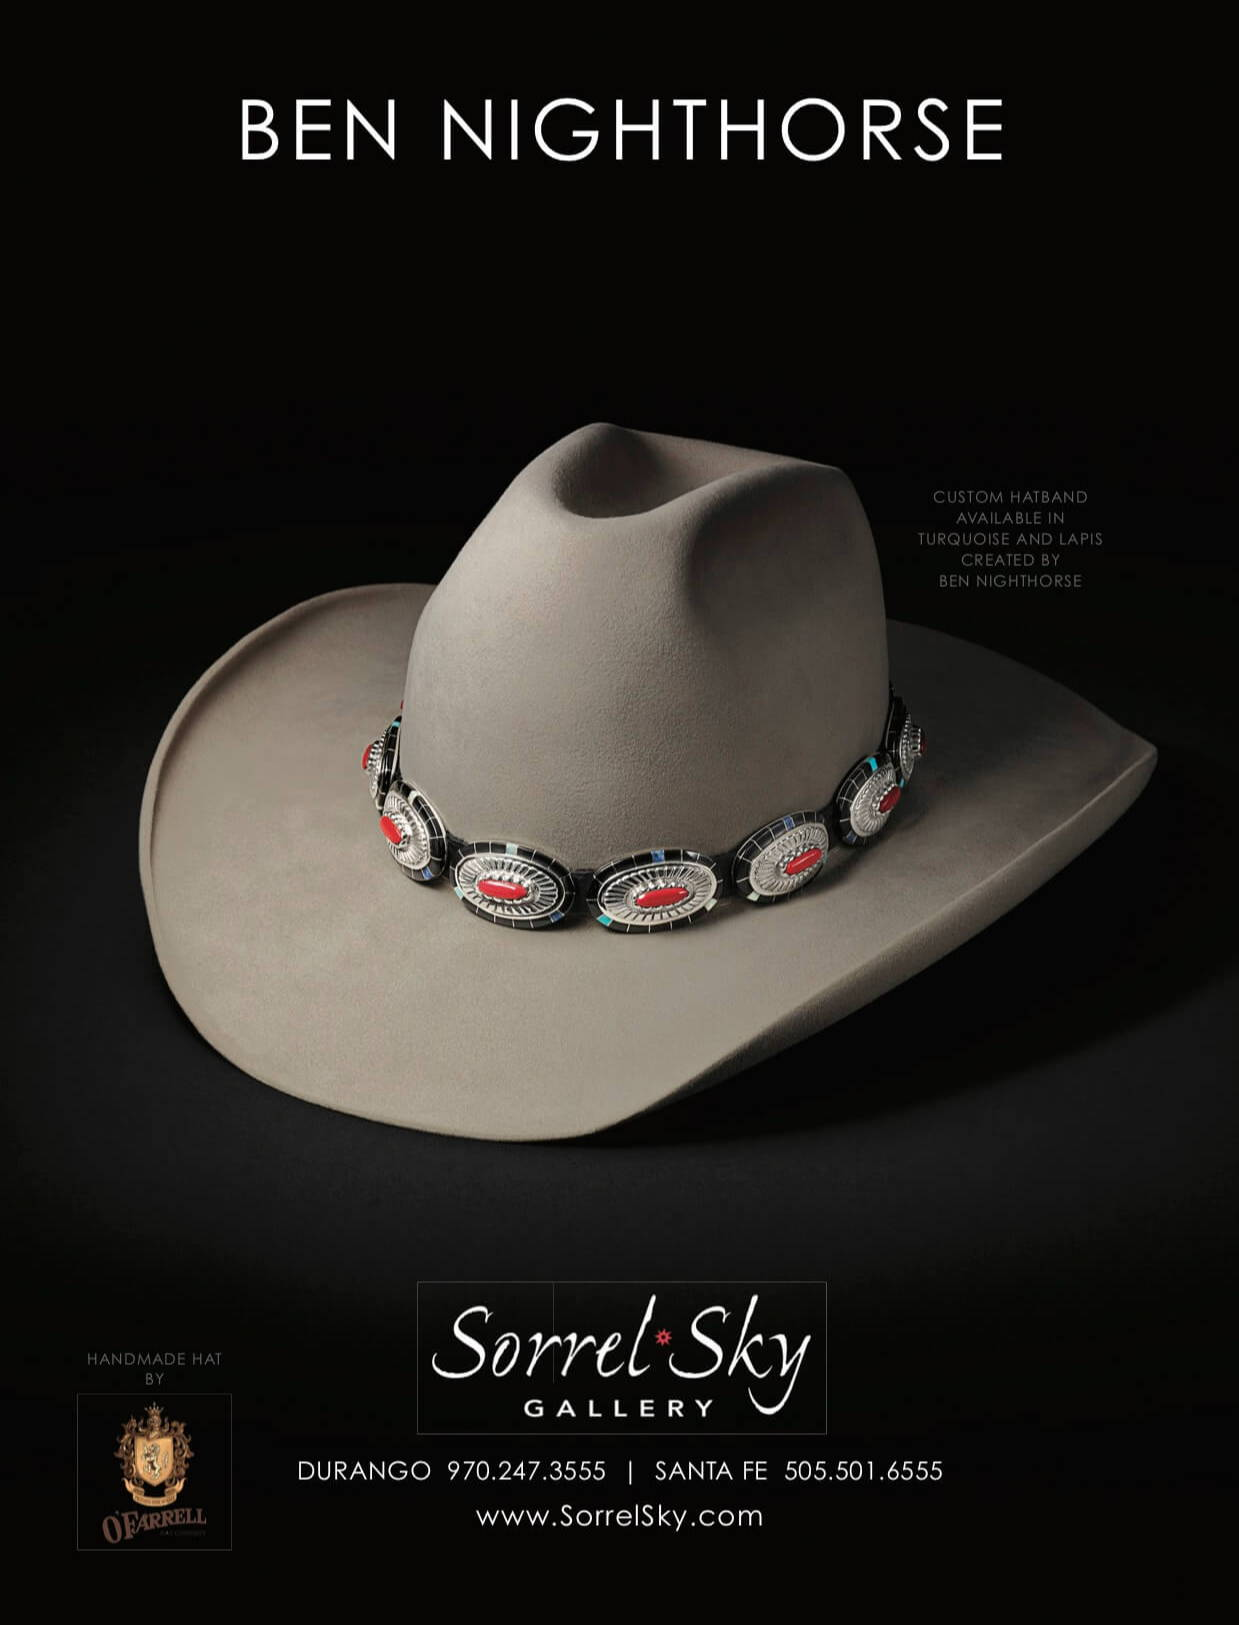 Ben Nighthorse. Nighthorse Jewelry. Ben Campbell. Hat Band. OFarrell Hat. Cowboy Hat. Santa Fe Art Gallery. Sorrel Sky Gallery.